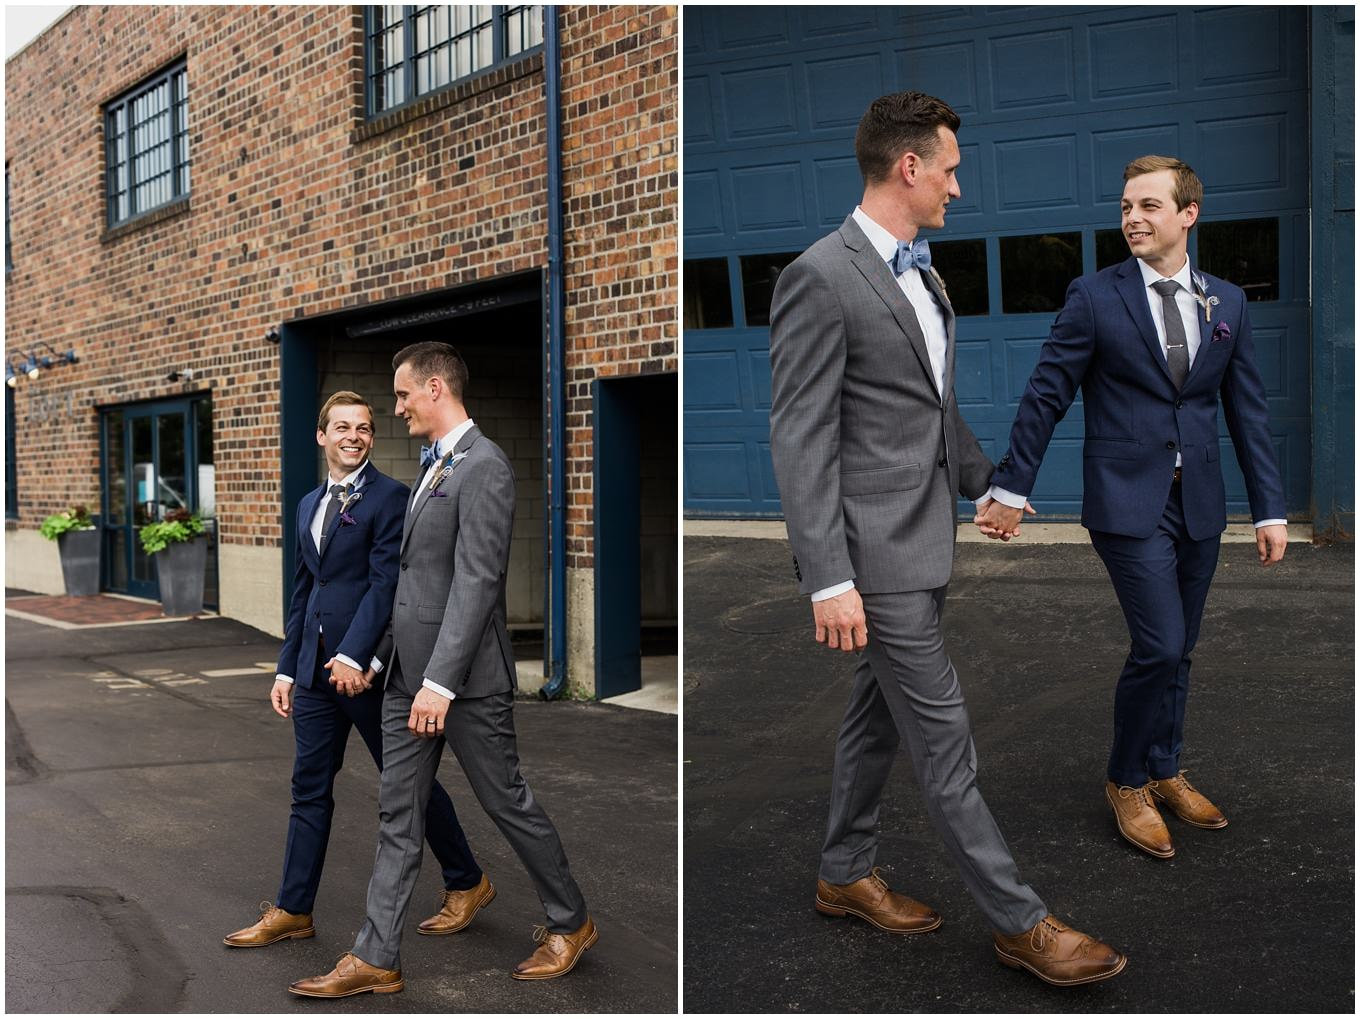 adam lowe photography, wedding, columbus, ohio, pride, gay, tom and terry, smith bros, dock 580, the loft, downtown, stylish, pursuit, ecoflora, groom and groom, grooms,